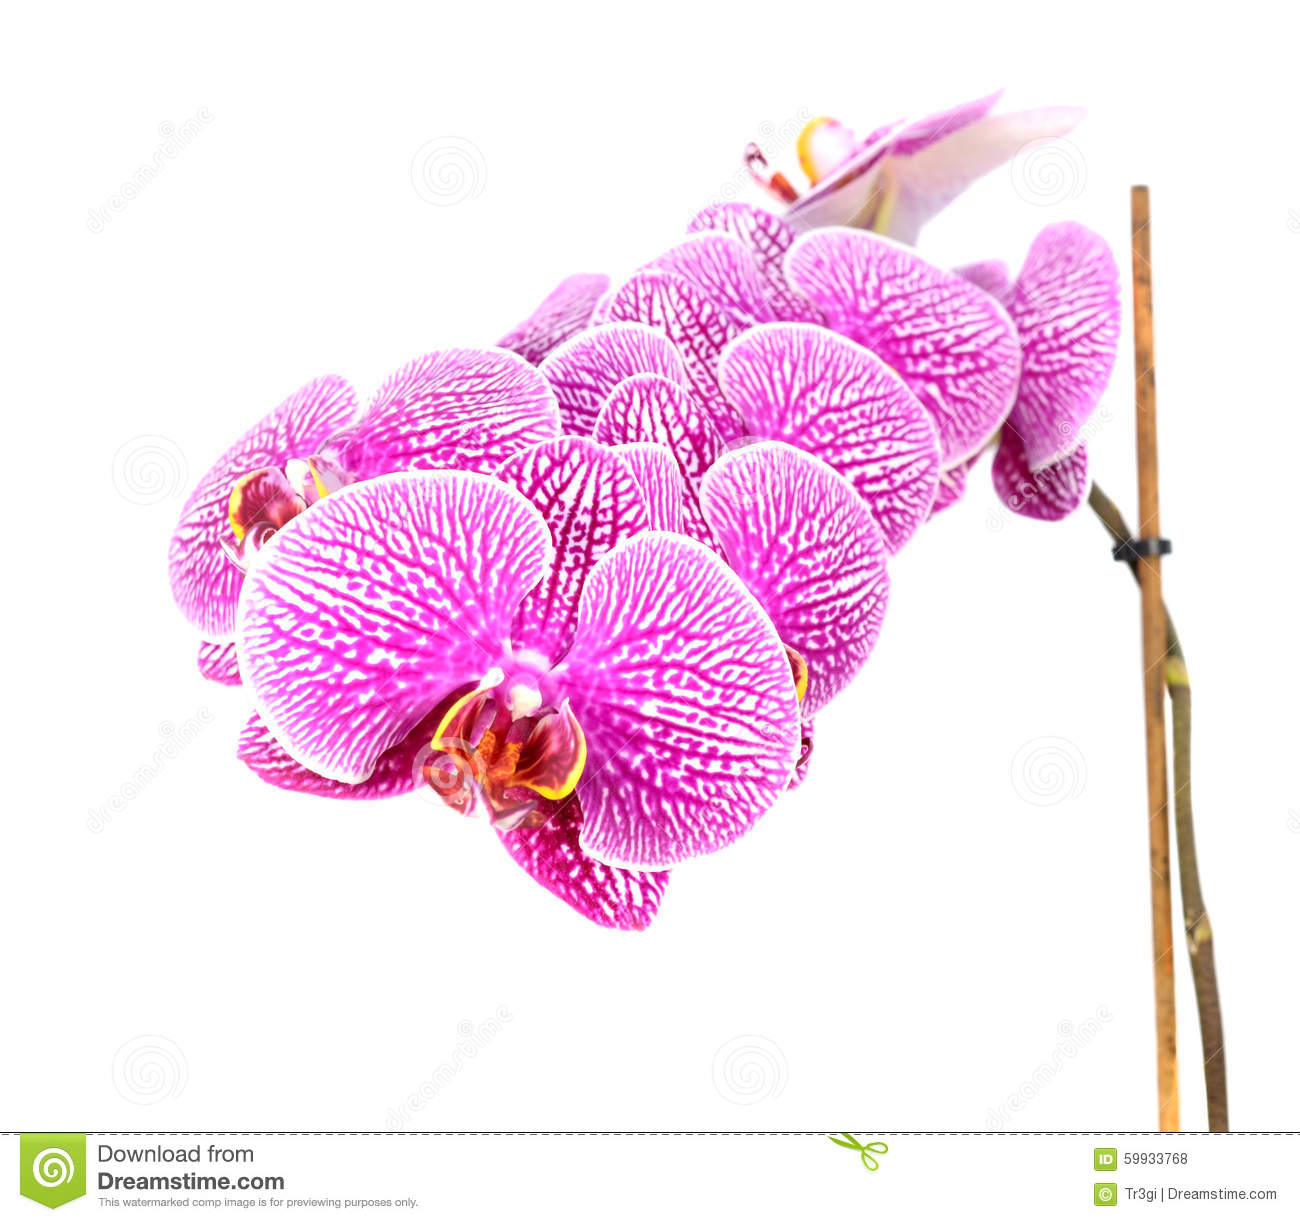 Close-up of Orchid Flowers Isolated on White